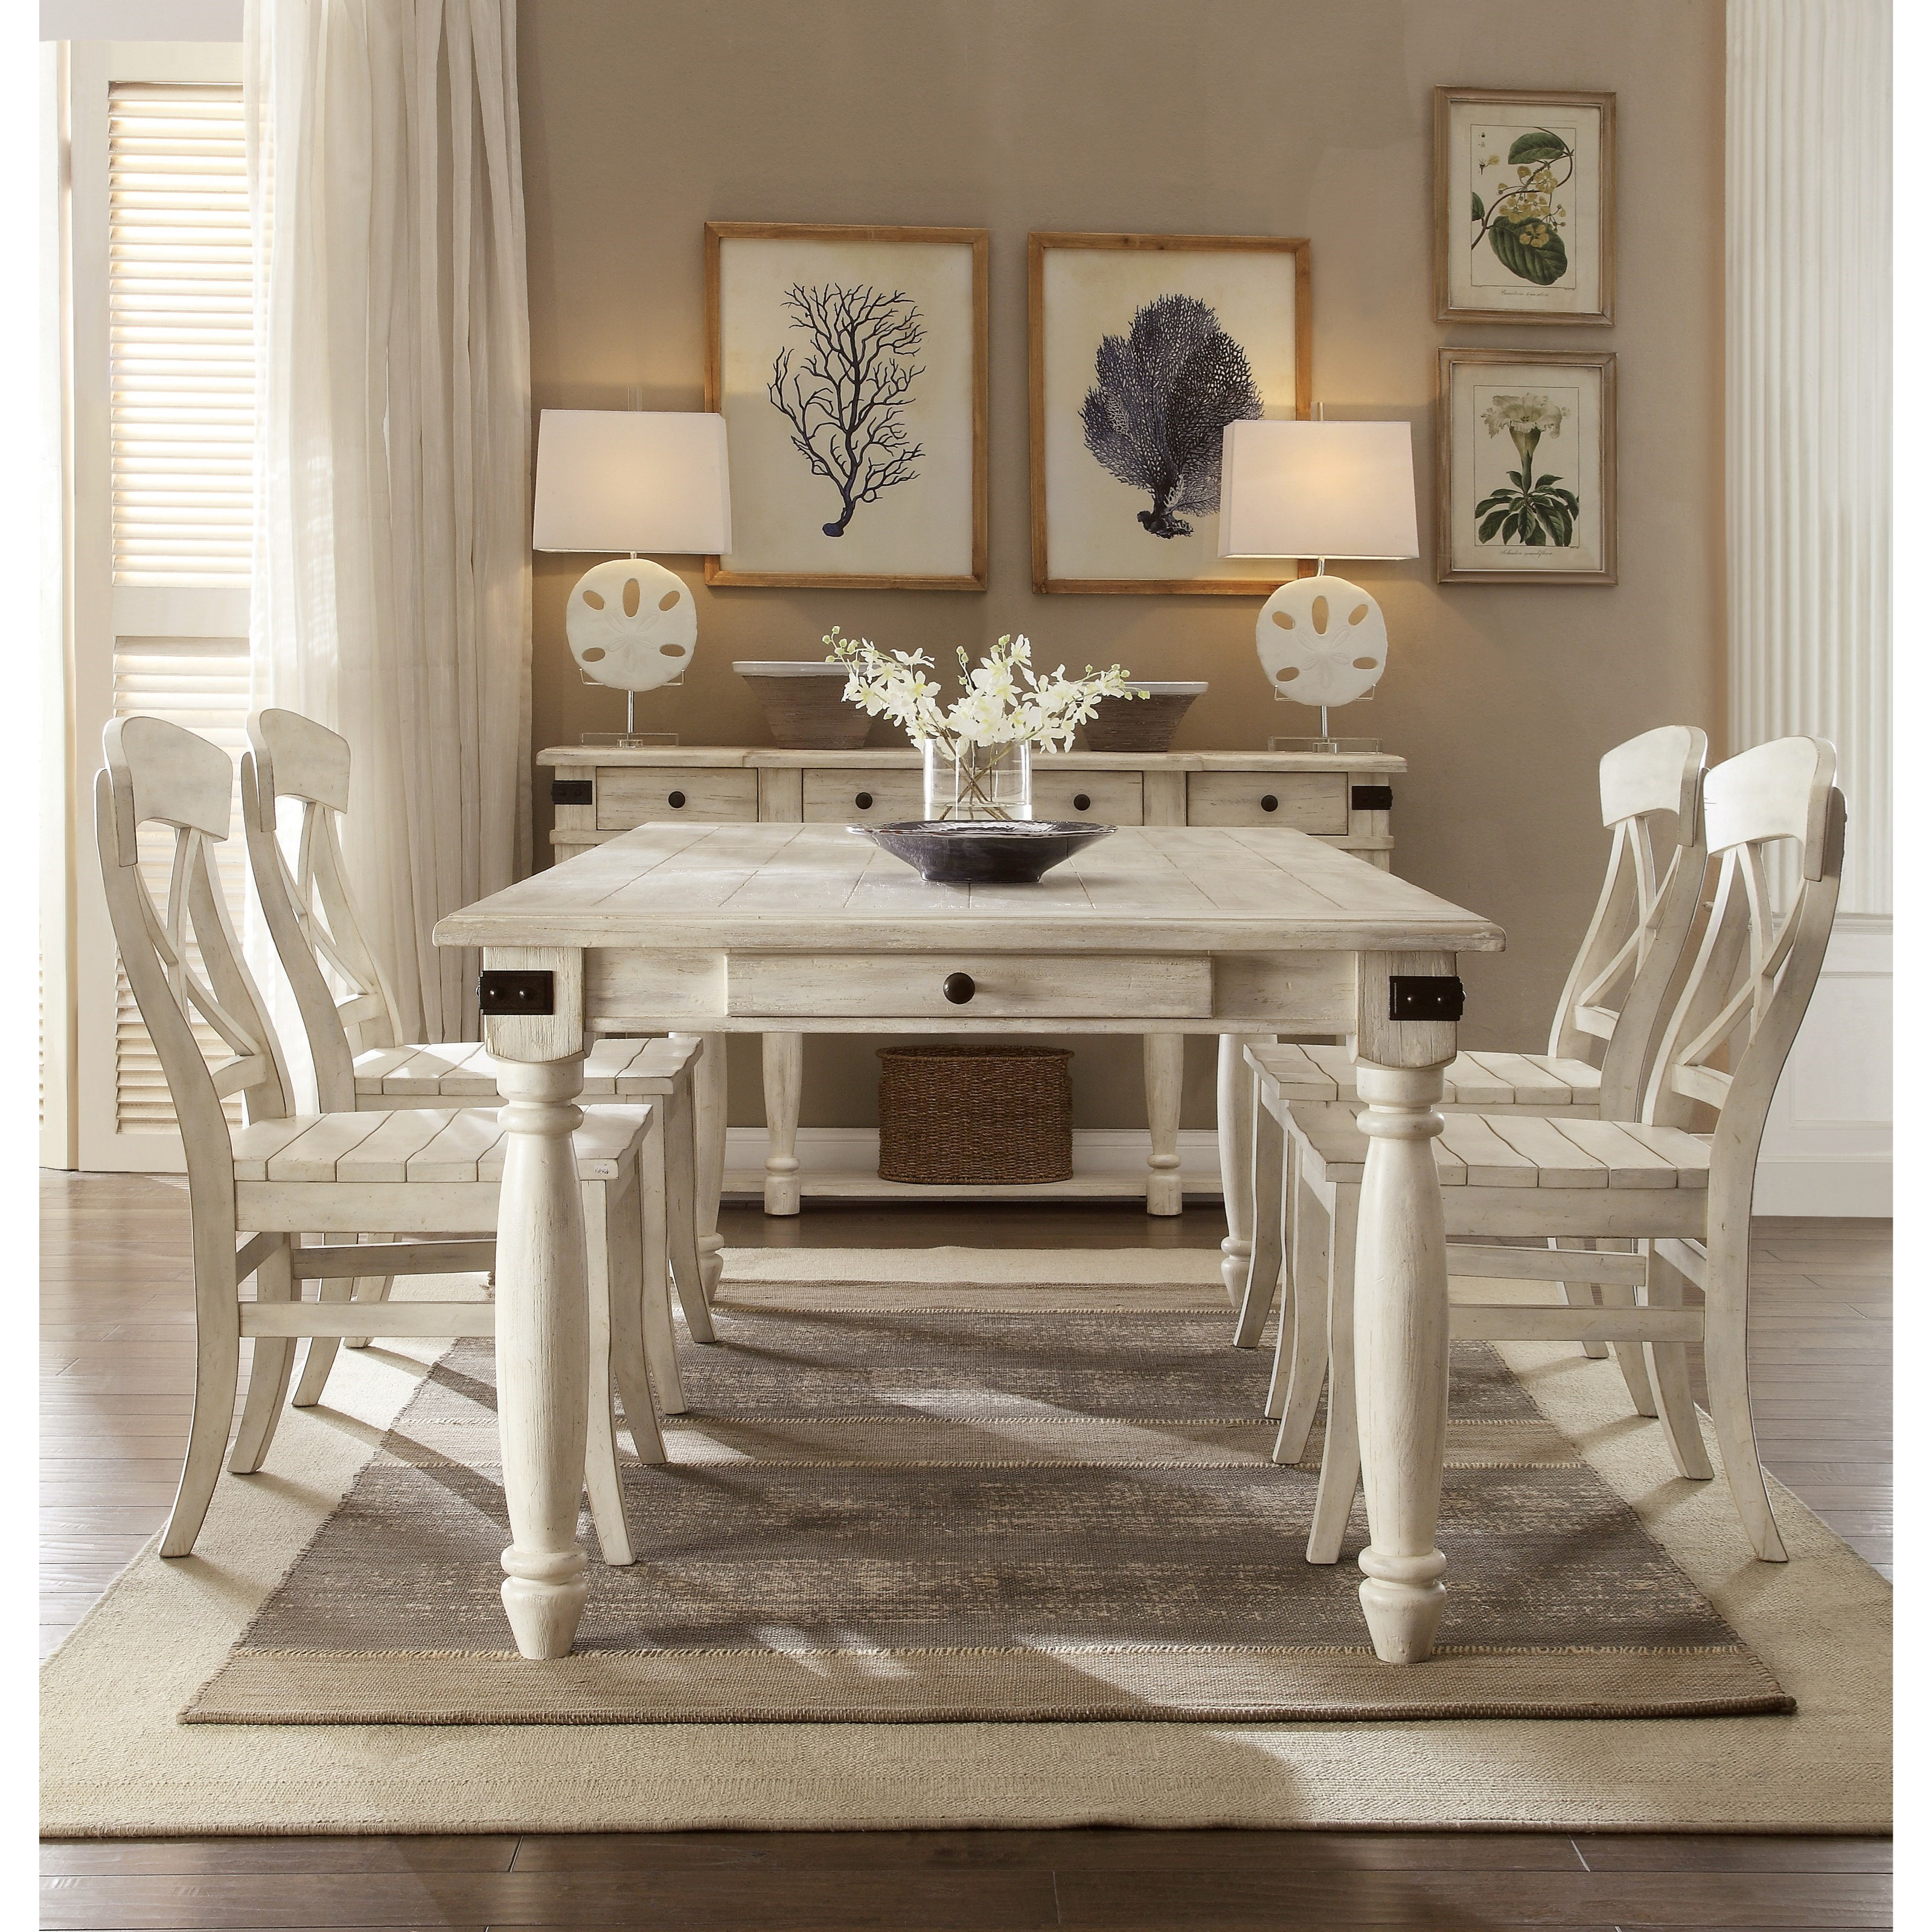 Regan 5 Piece Table and Chair Set by Riverside Furniture at Zak's Home